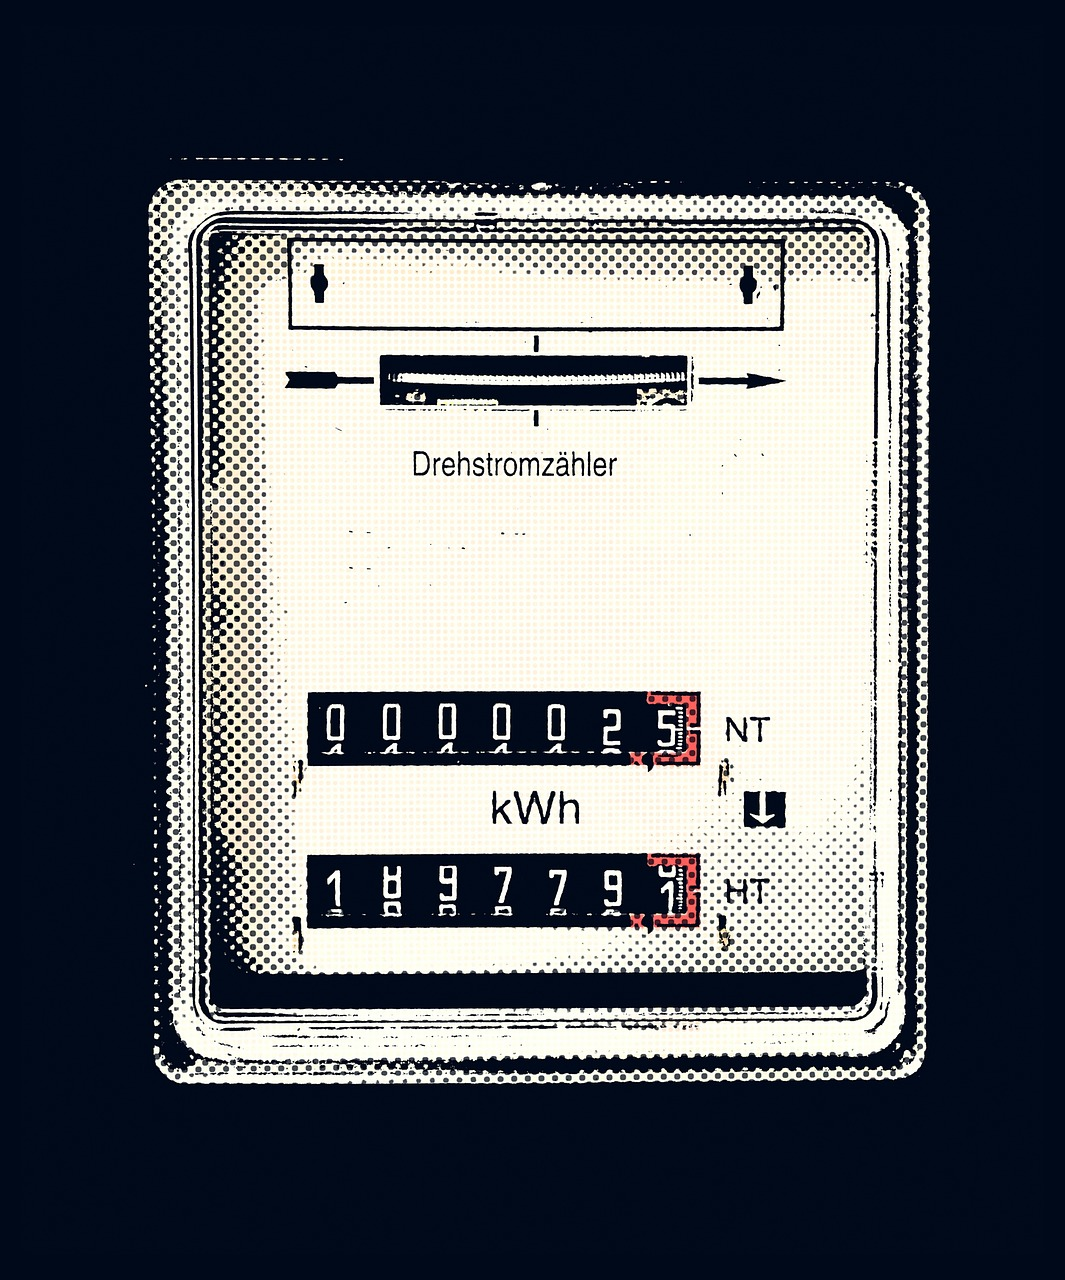 three-phase meter  electricity meter  drawing free photo